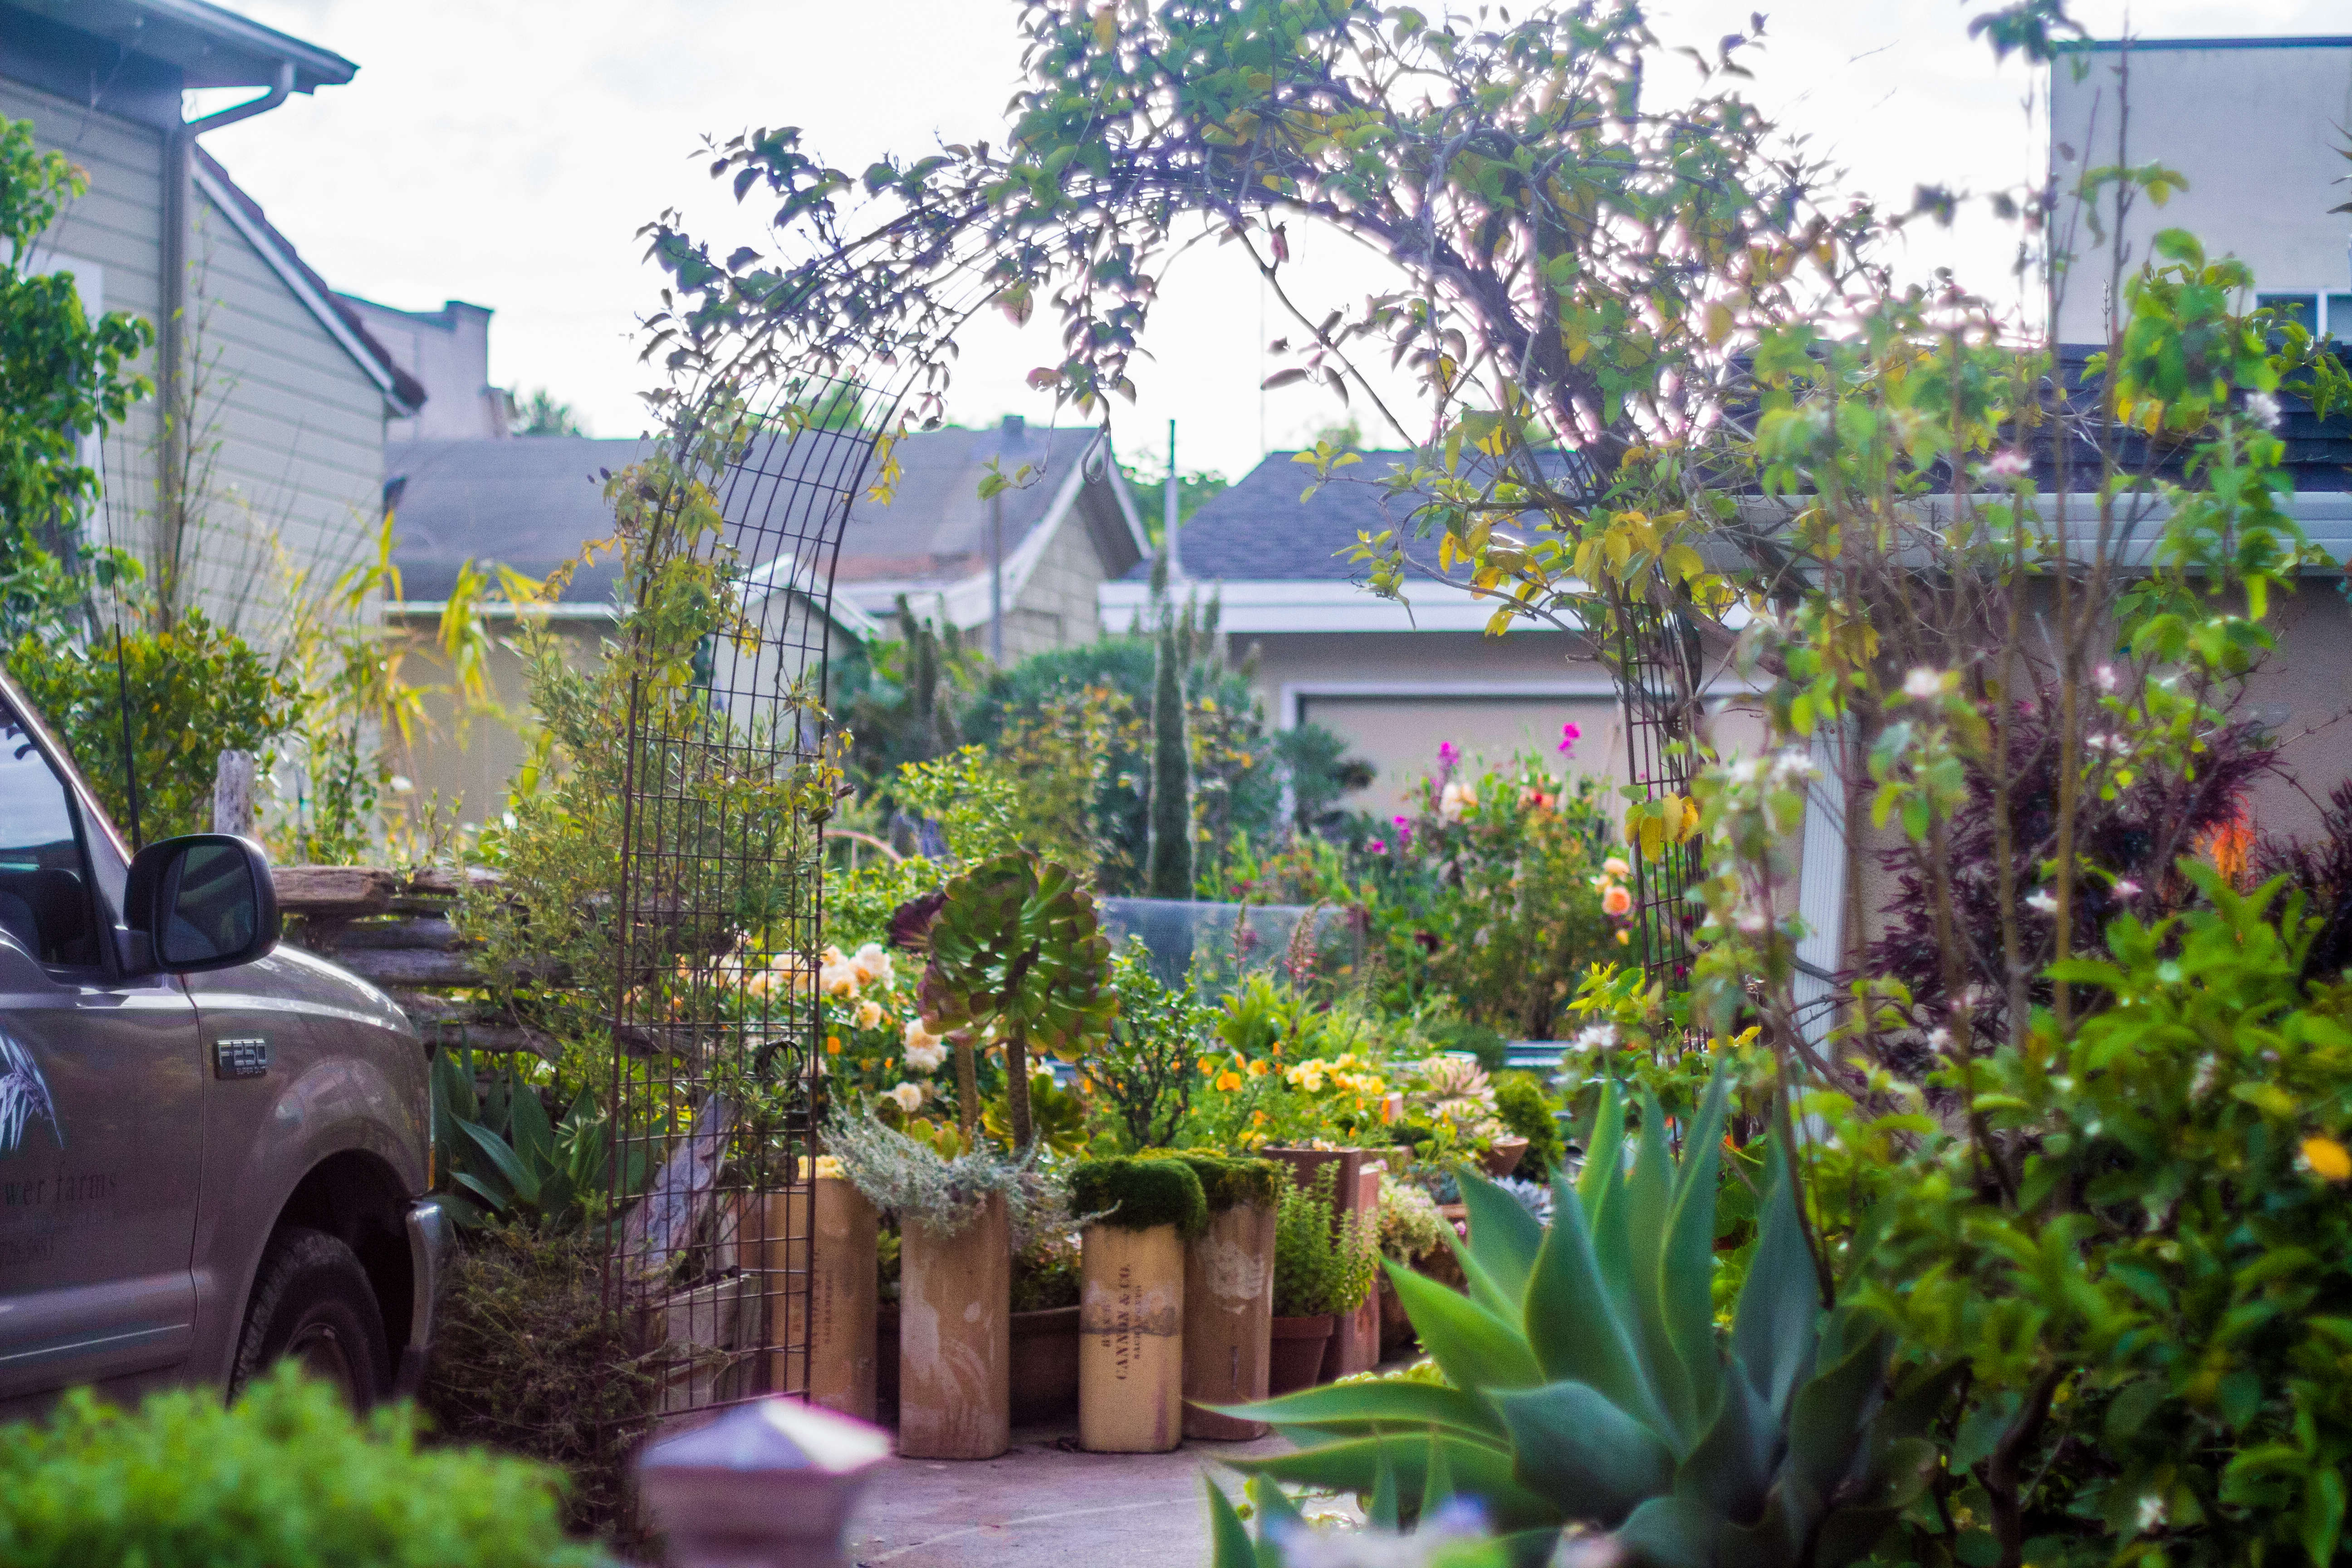 Perfect Garden Visit: My Driveway Oasis In Half Moon Bay, California